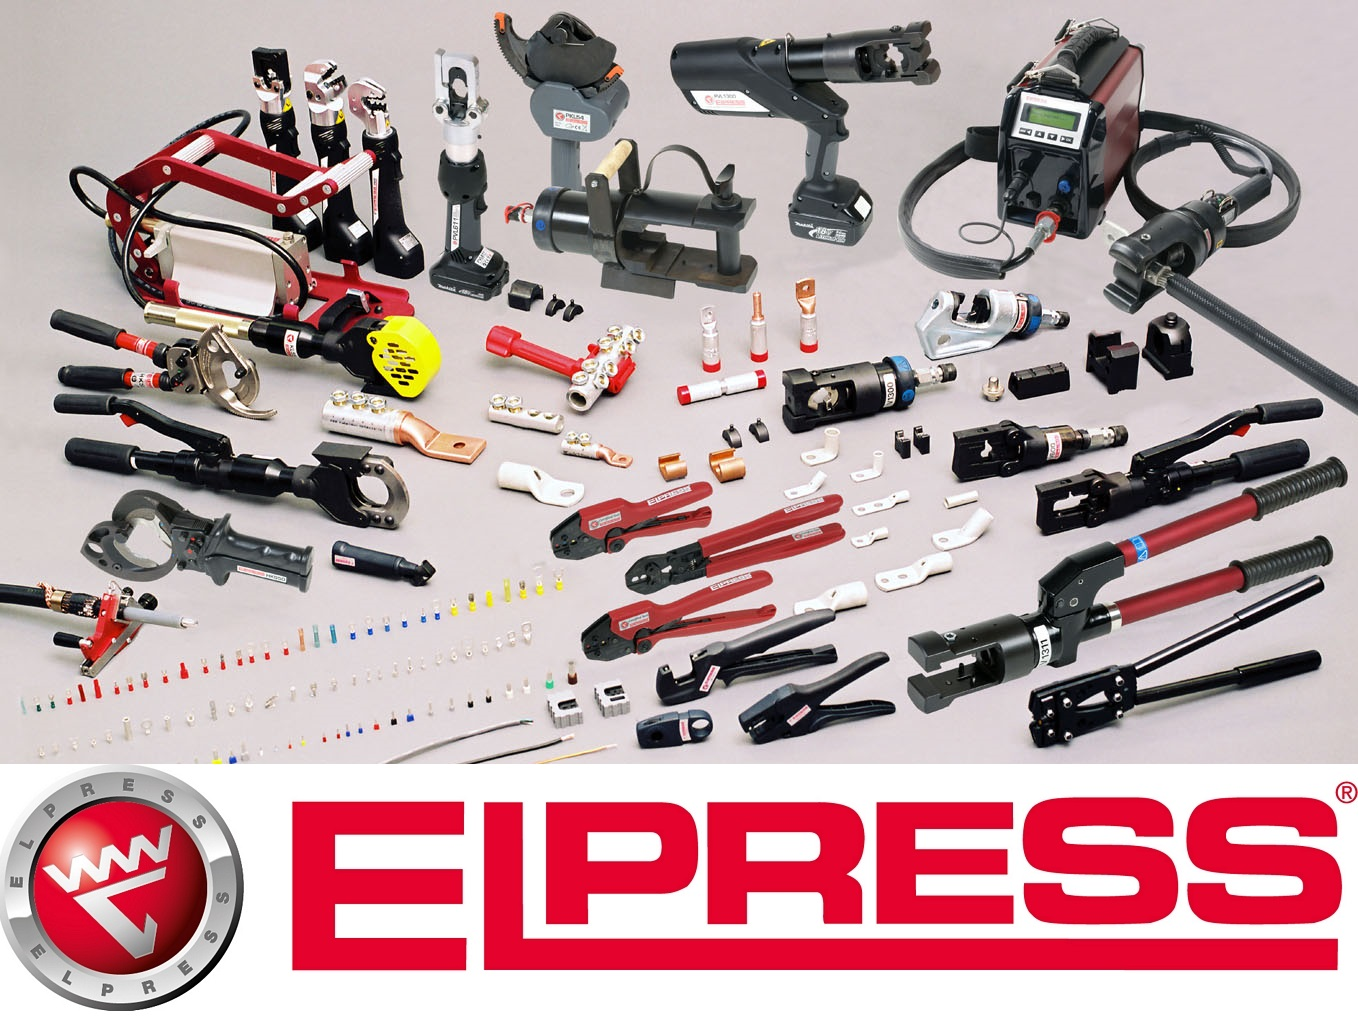 Complete guide of Elpress range of products